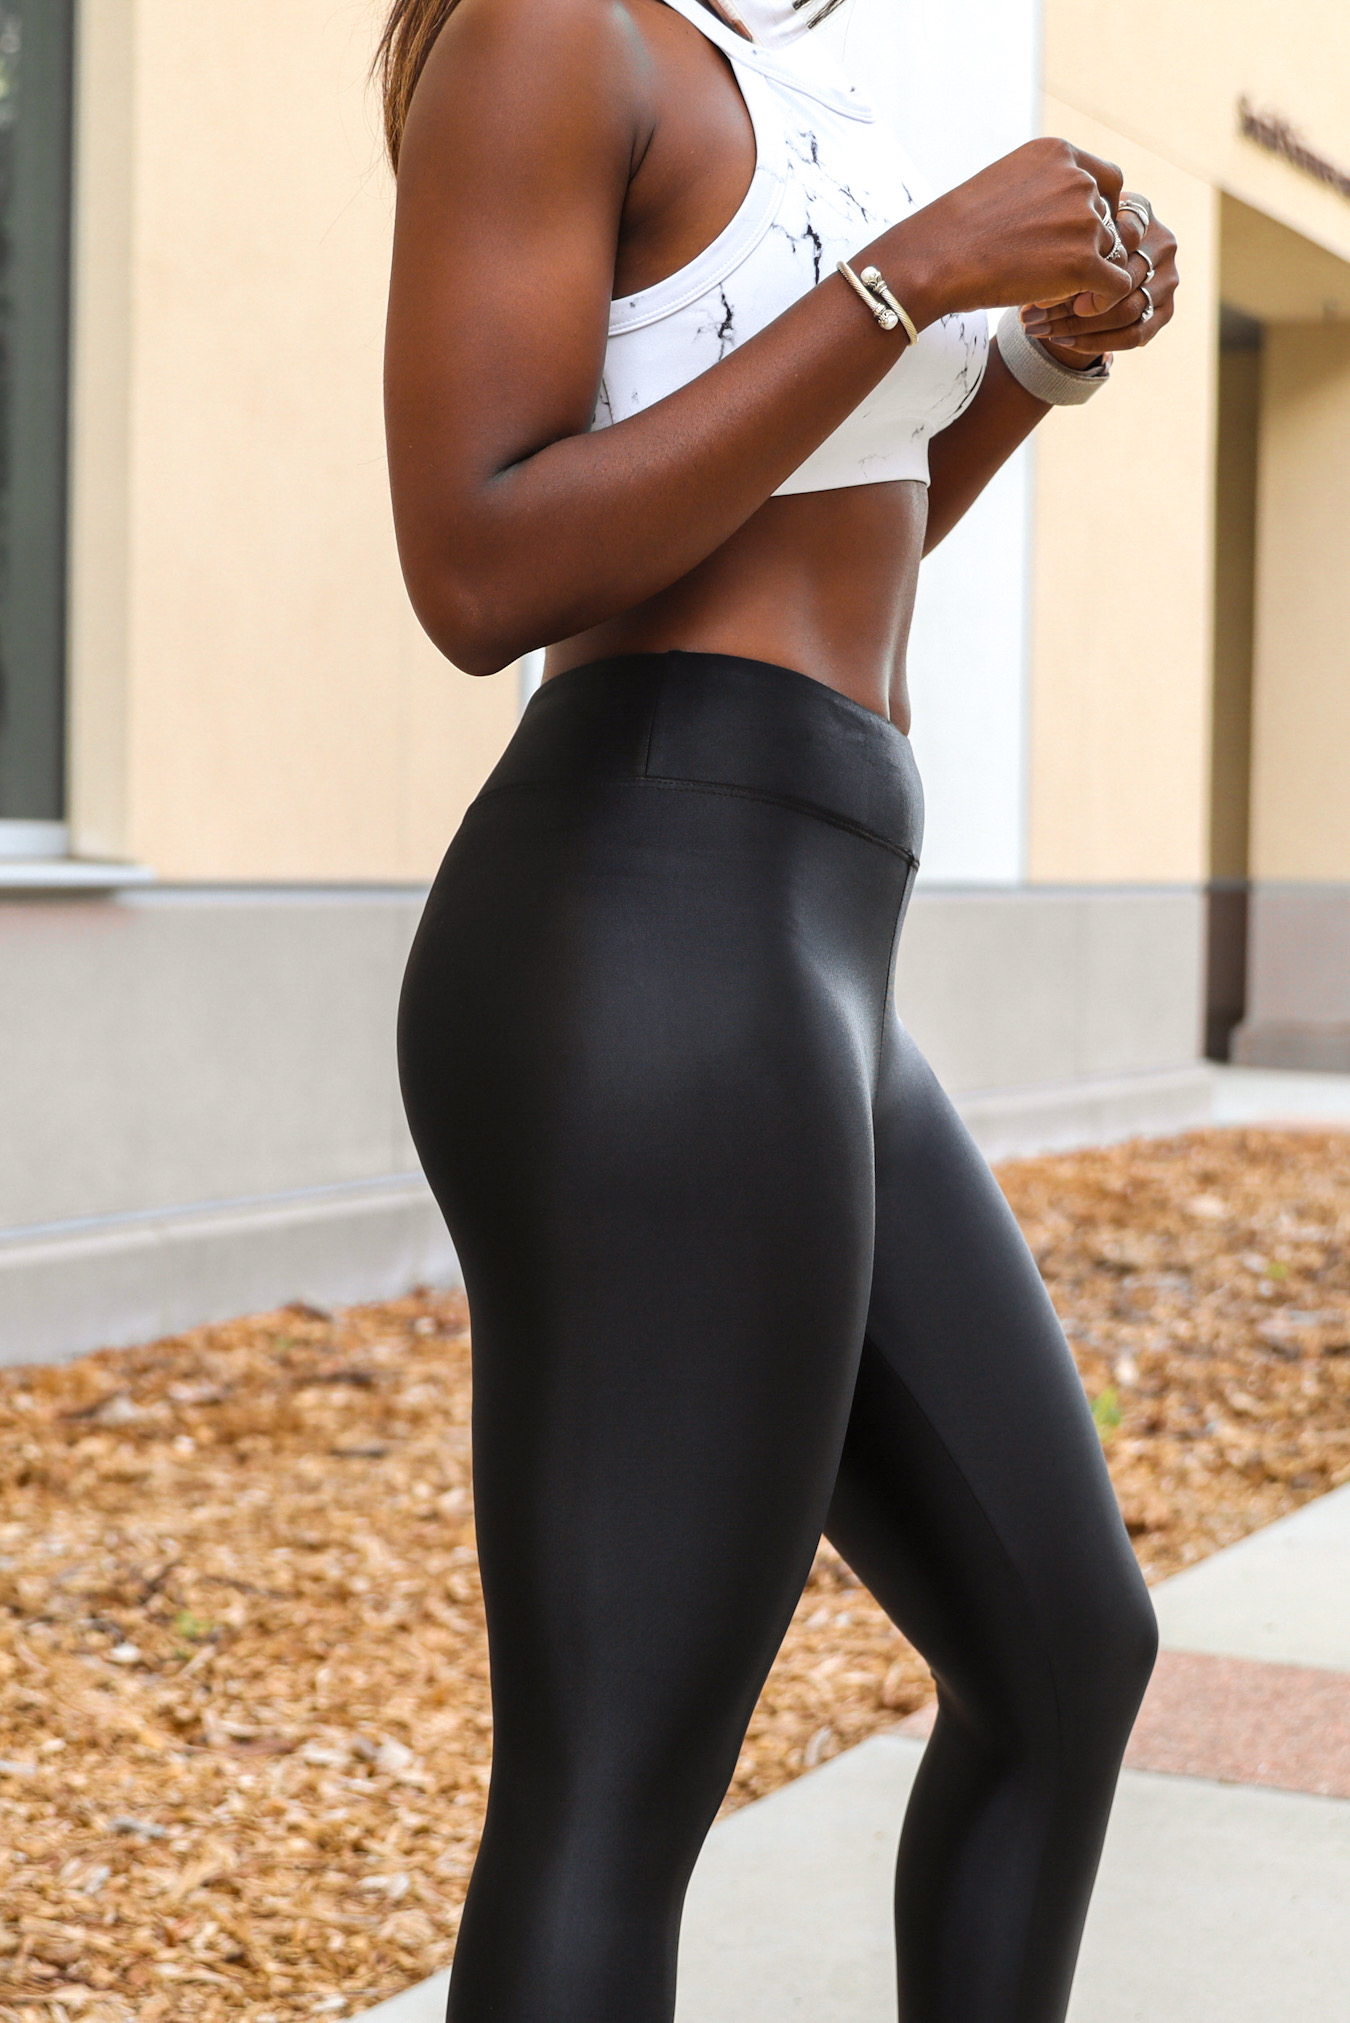 Koral Lustrous Legging sizing review